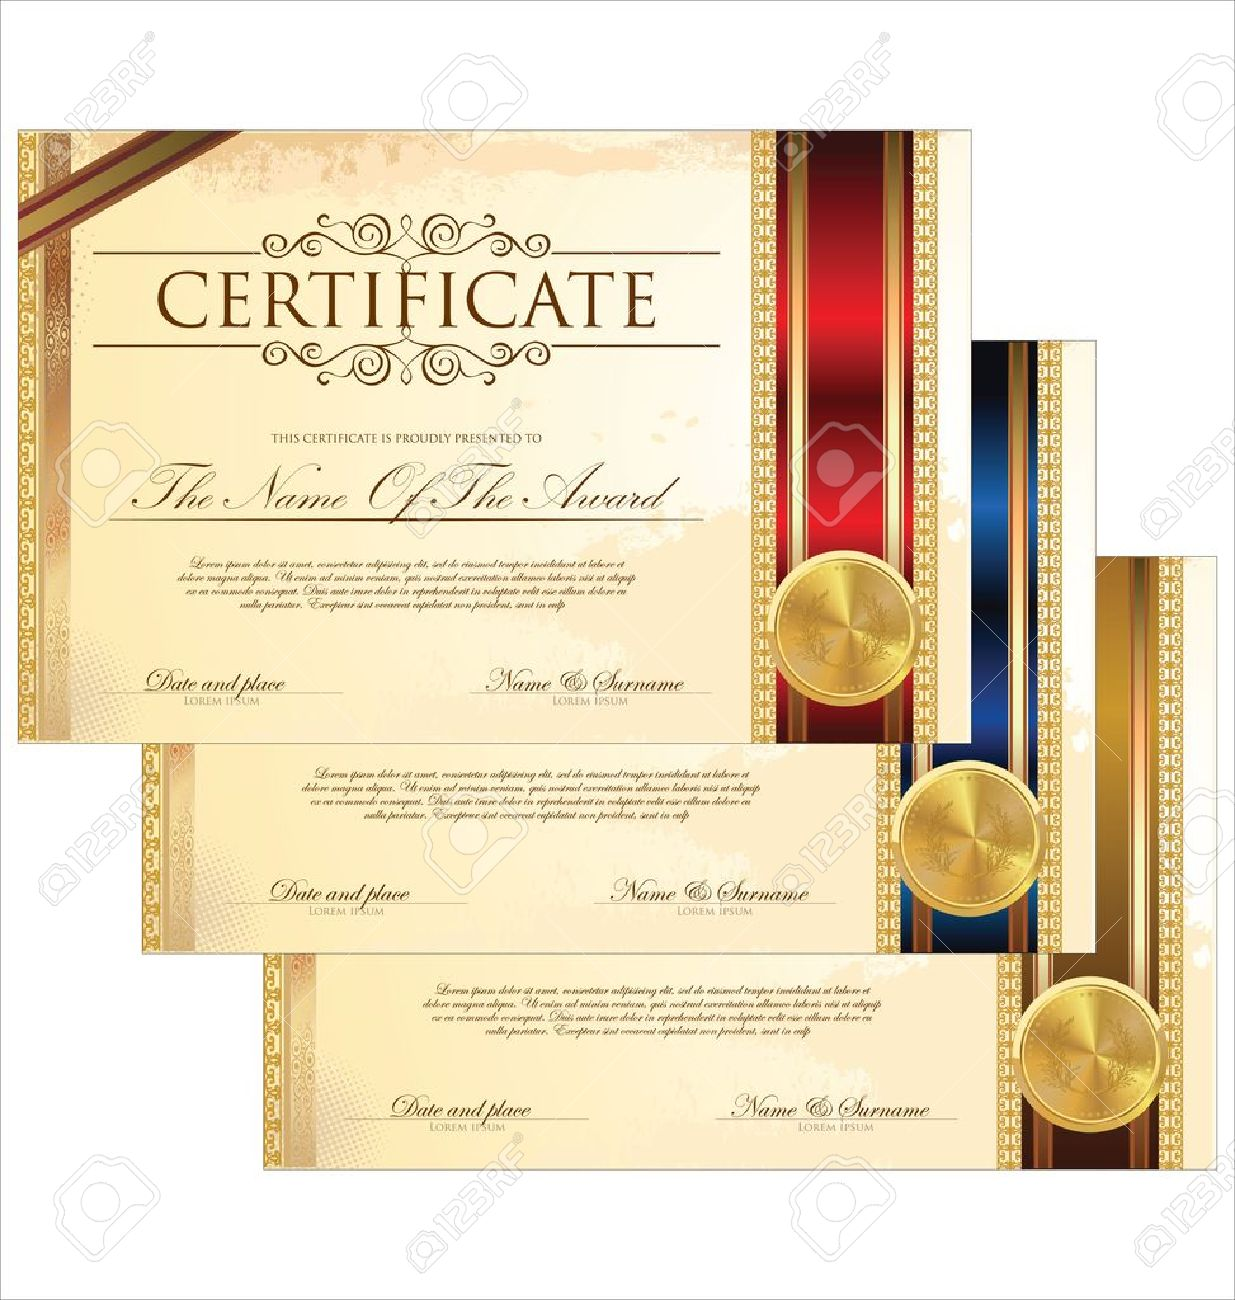 100 award certificate border template award certificate award certificate border template 29 832 award certificate template stock vector illustration and yadclub Image collections